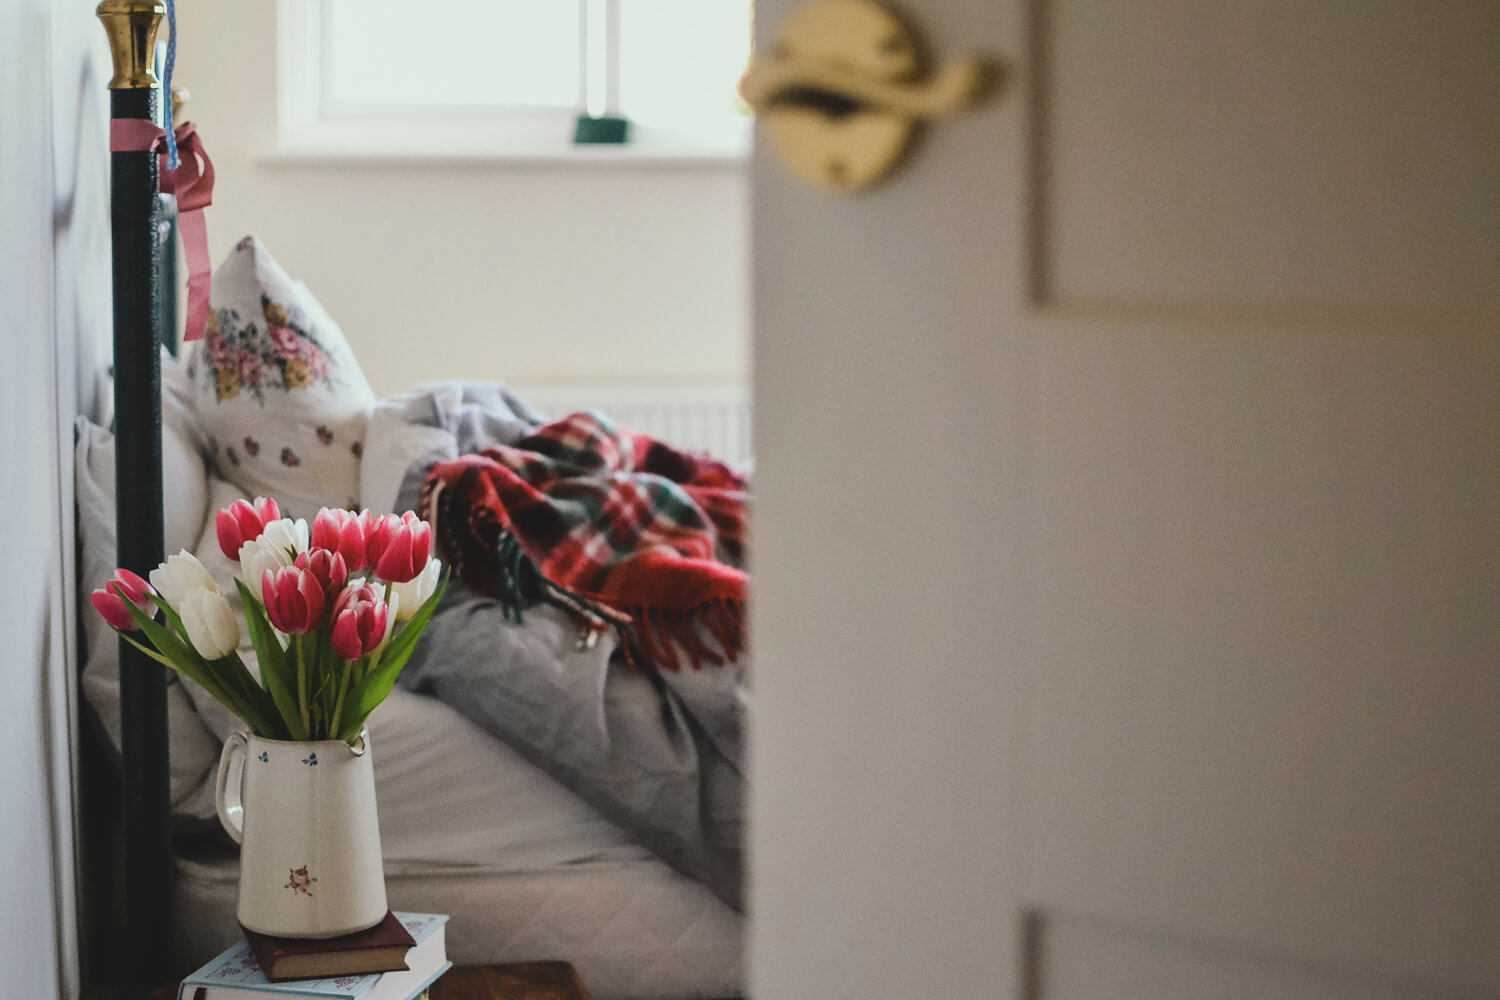 A cosy bed with blanket and bunch of tulips - Time management tips for creatives